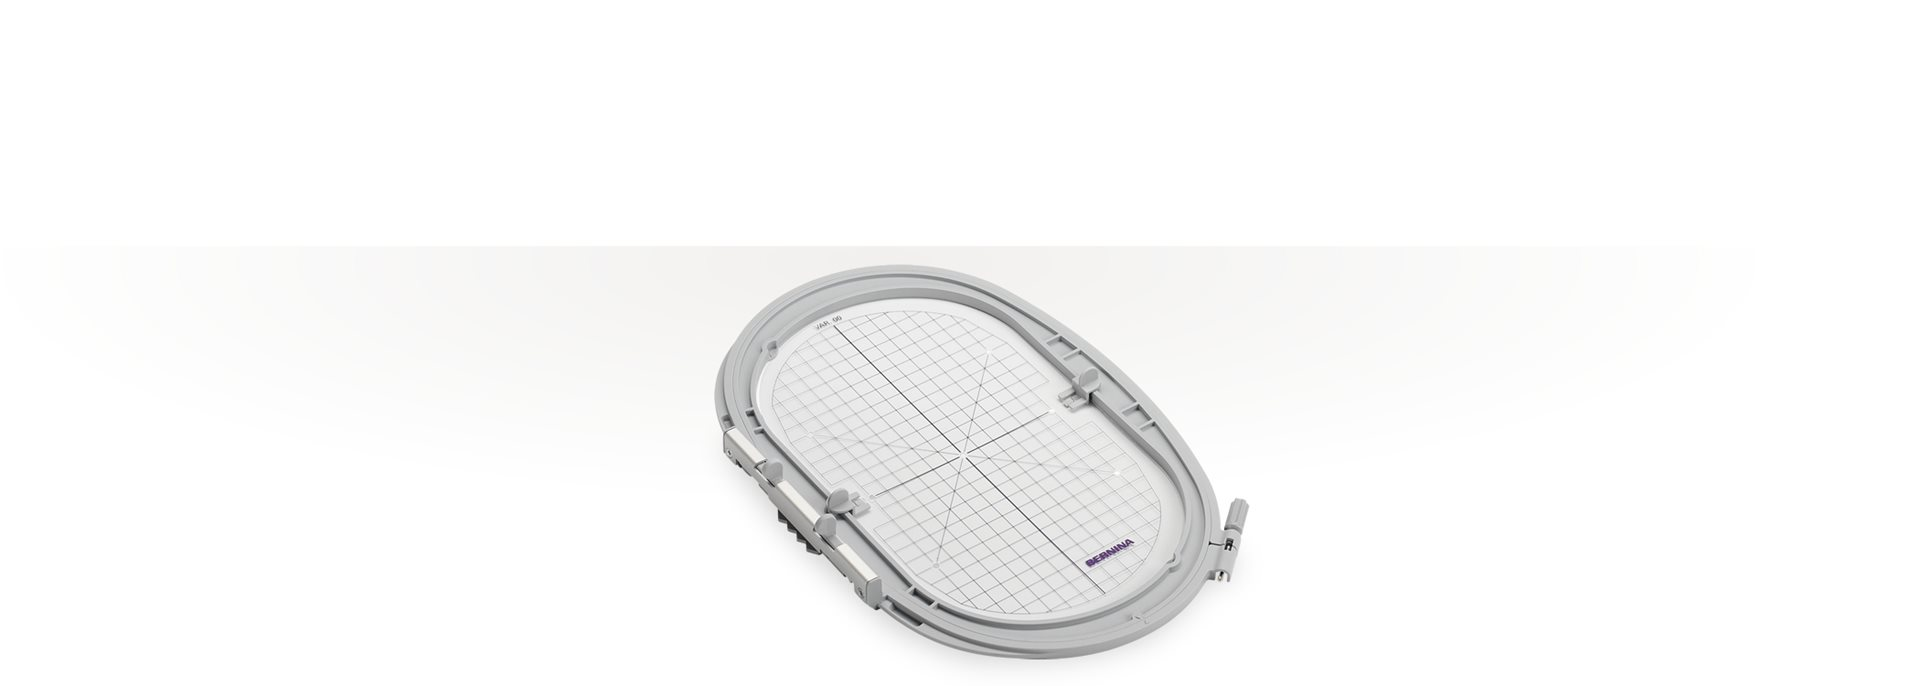 Picture: Large oval hoop